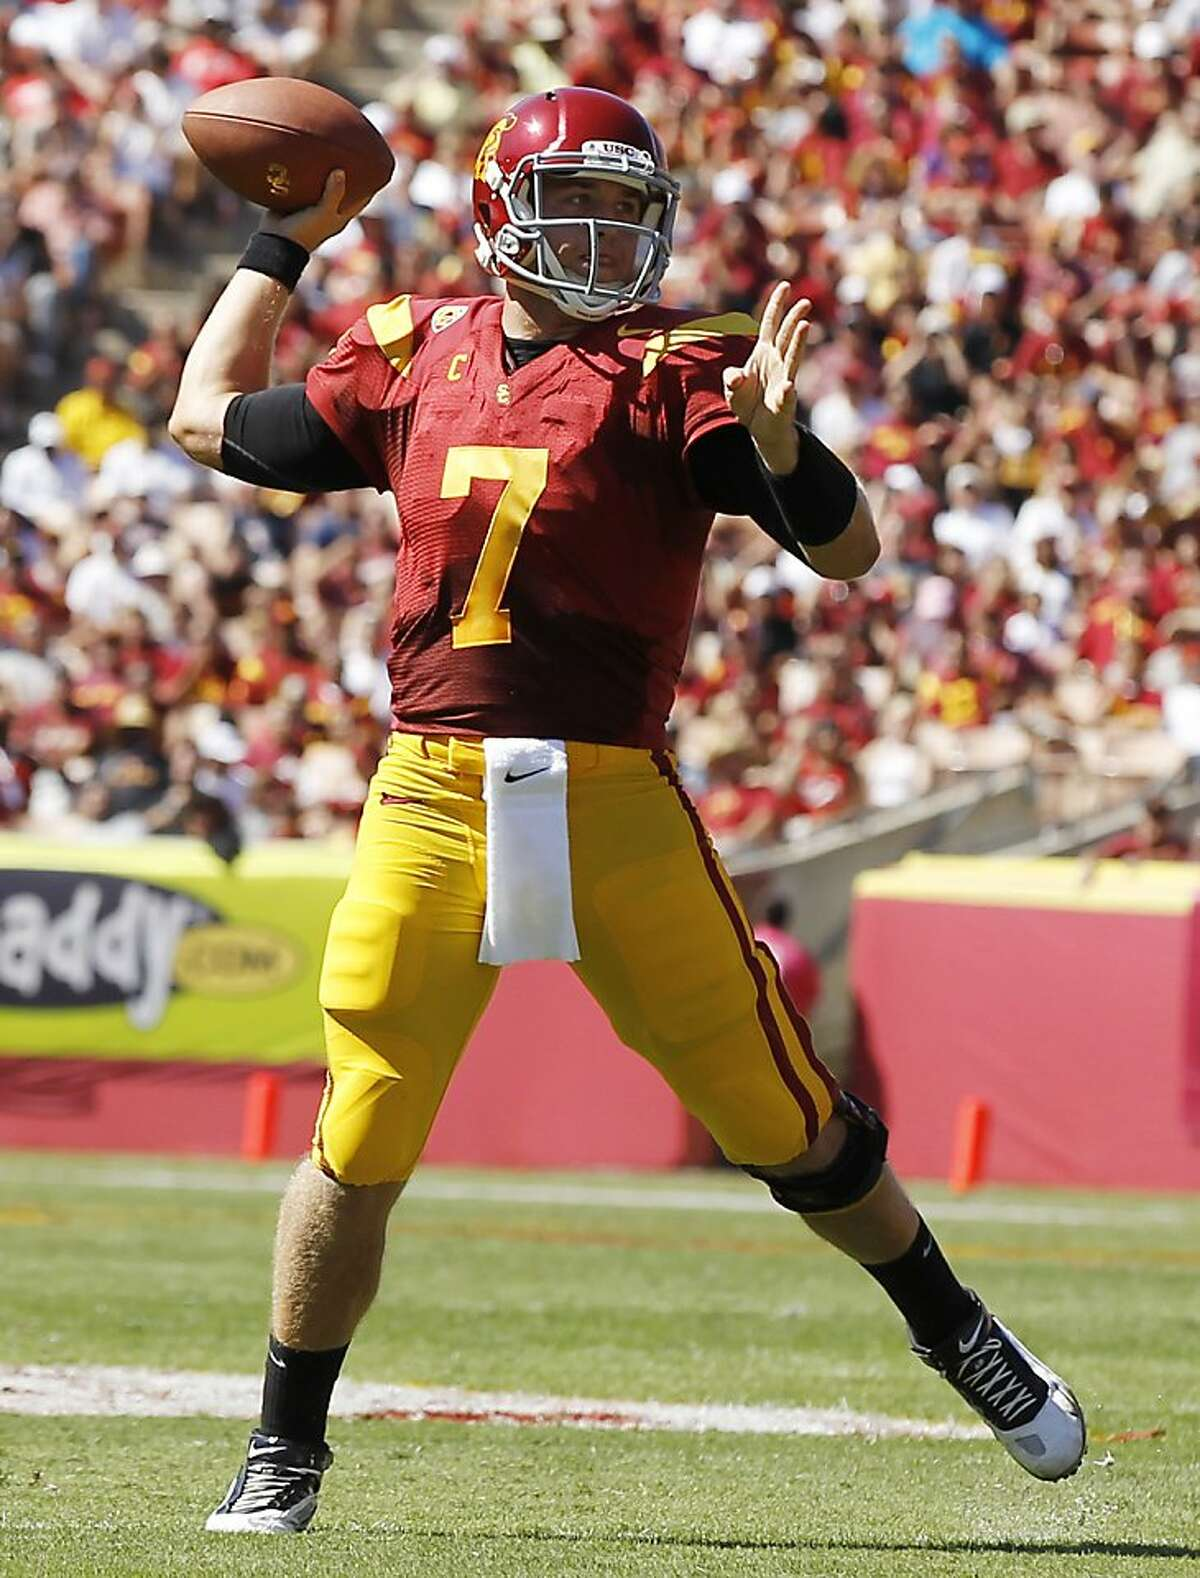 Southern California quarterback Matt Barkley throws a touchdown pass to tight end Xavier Grimble against Arizona during the first half of an NCAA college football game Saturday, Oct. 1, 2011, in Los Angeles. (AP Photo/Danny Moloshok)